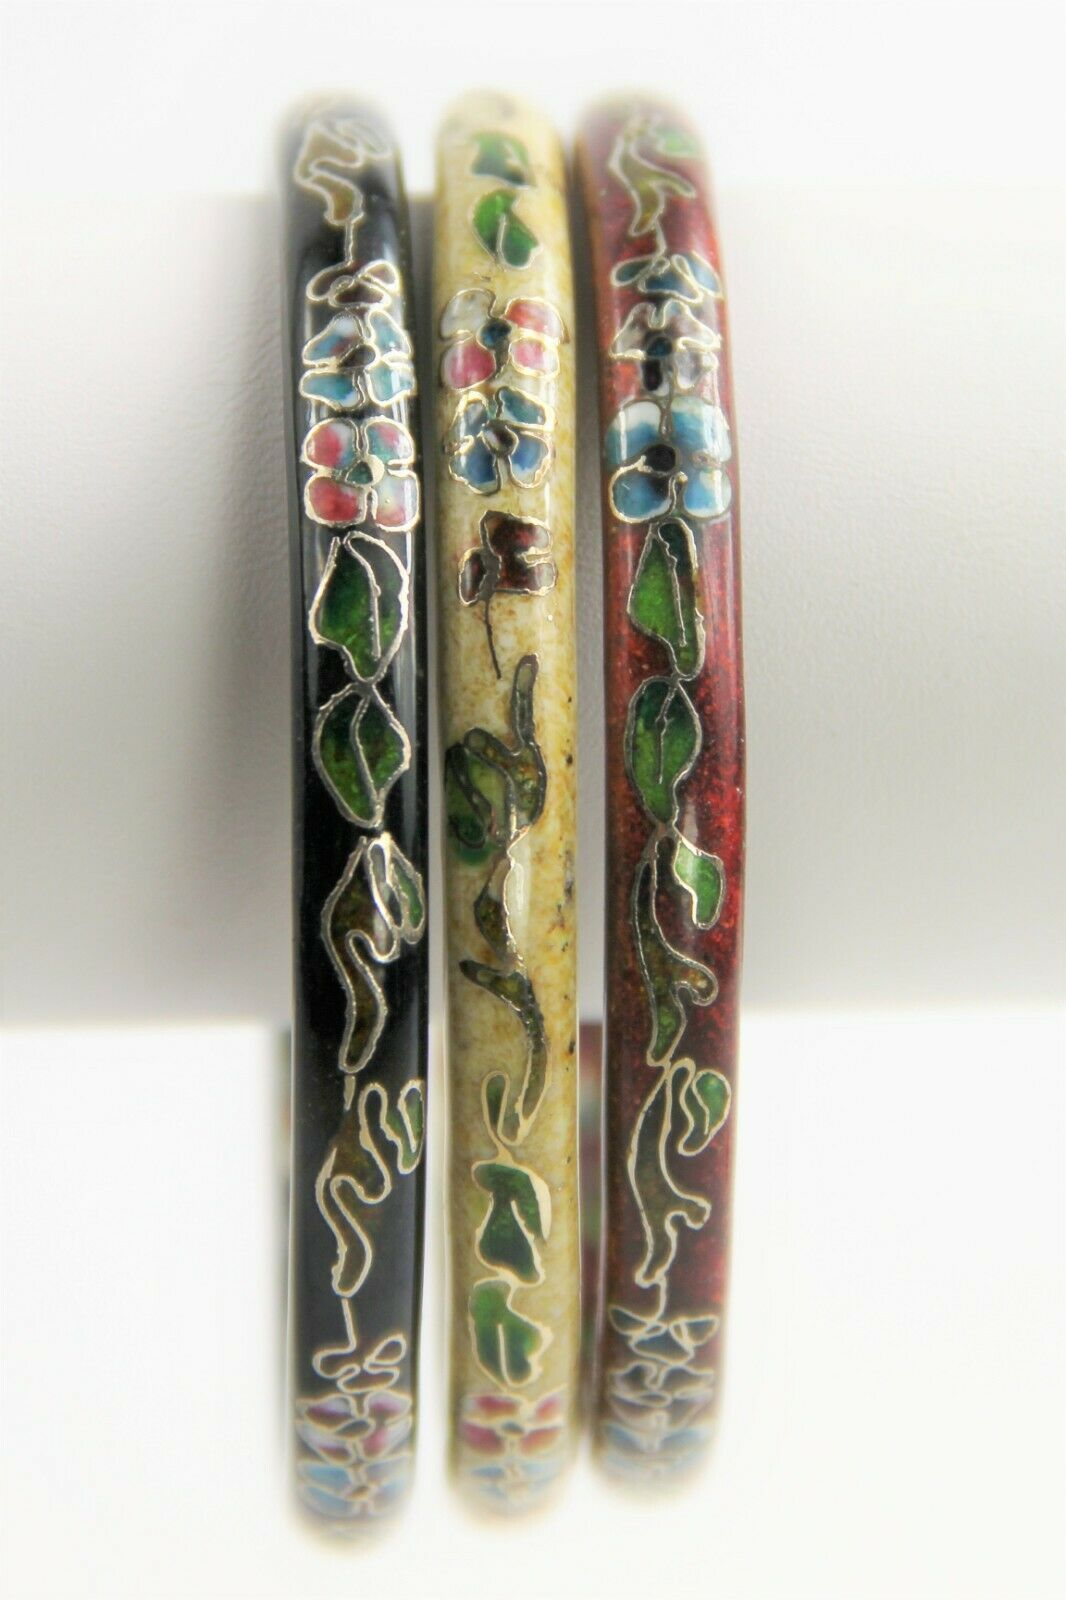 VINTAGE ESTATE Jewelry CHINESE CLOISONNE ENAMEL LOT OF 3 BANGLE BRACELETS STACK